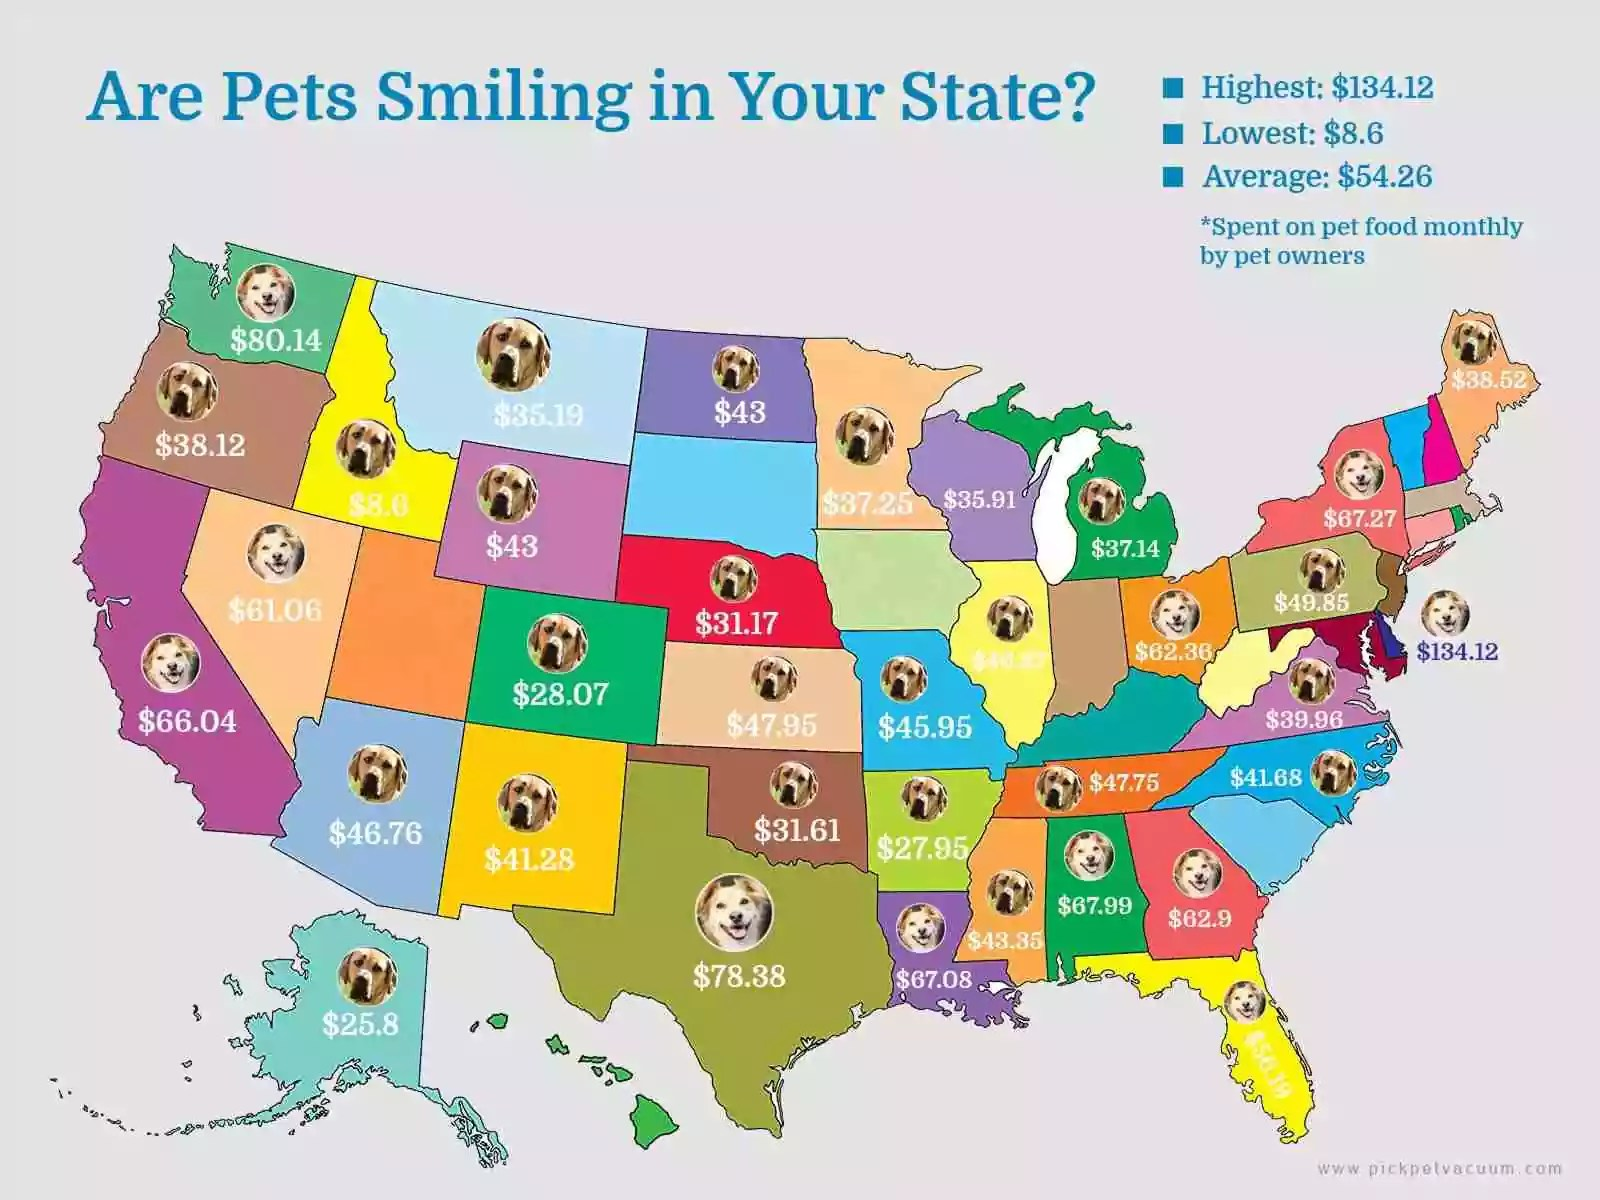 Are pets smiling in your state